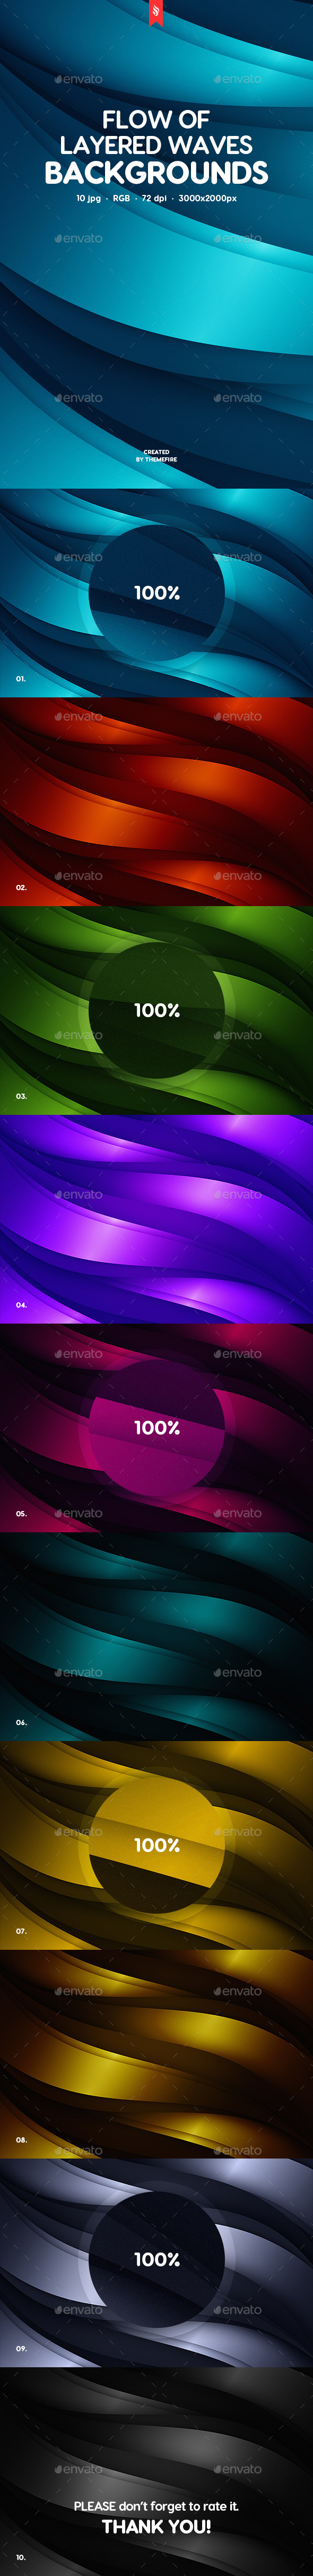 Flow of Layered Waves Backgrounds - Abstract Backgrounds